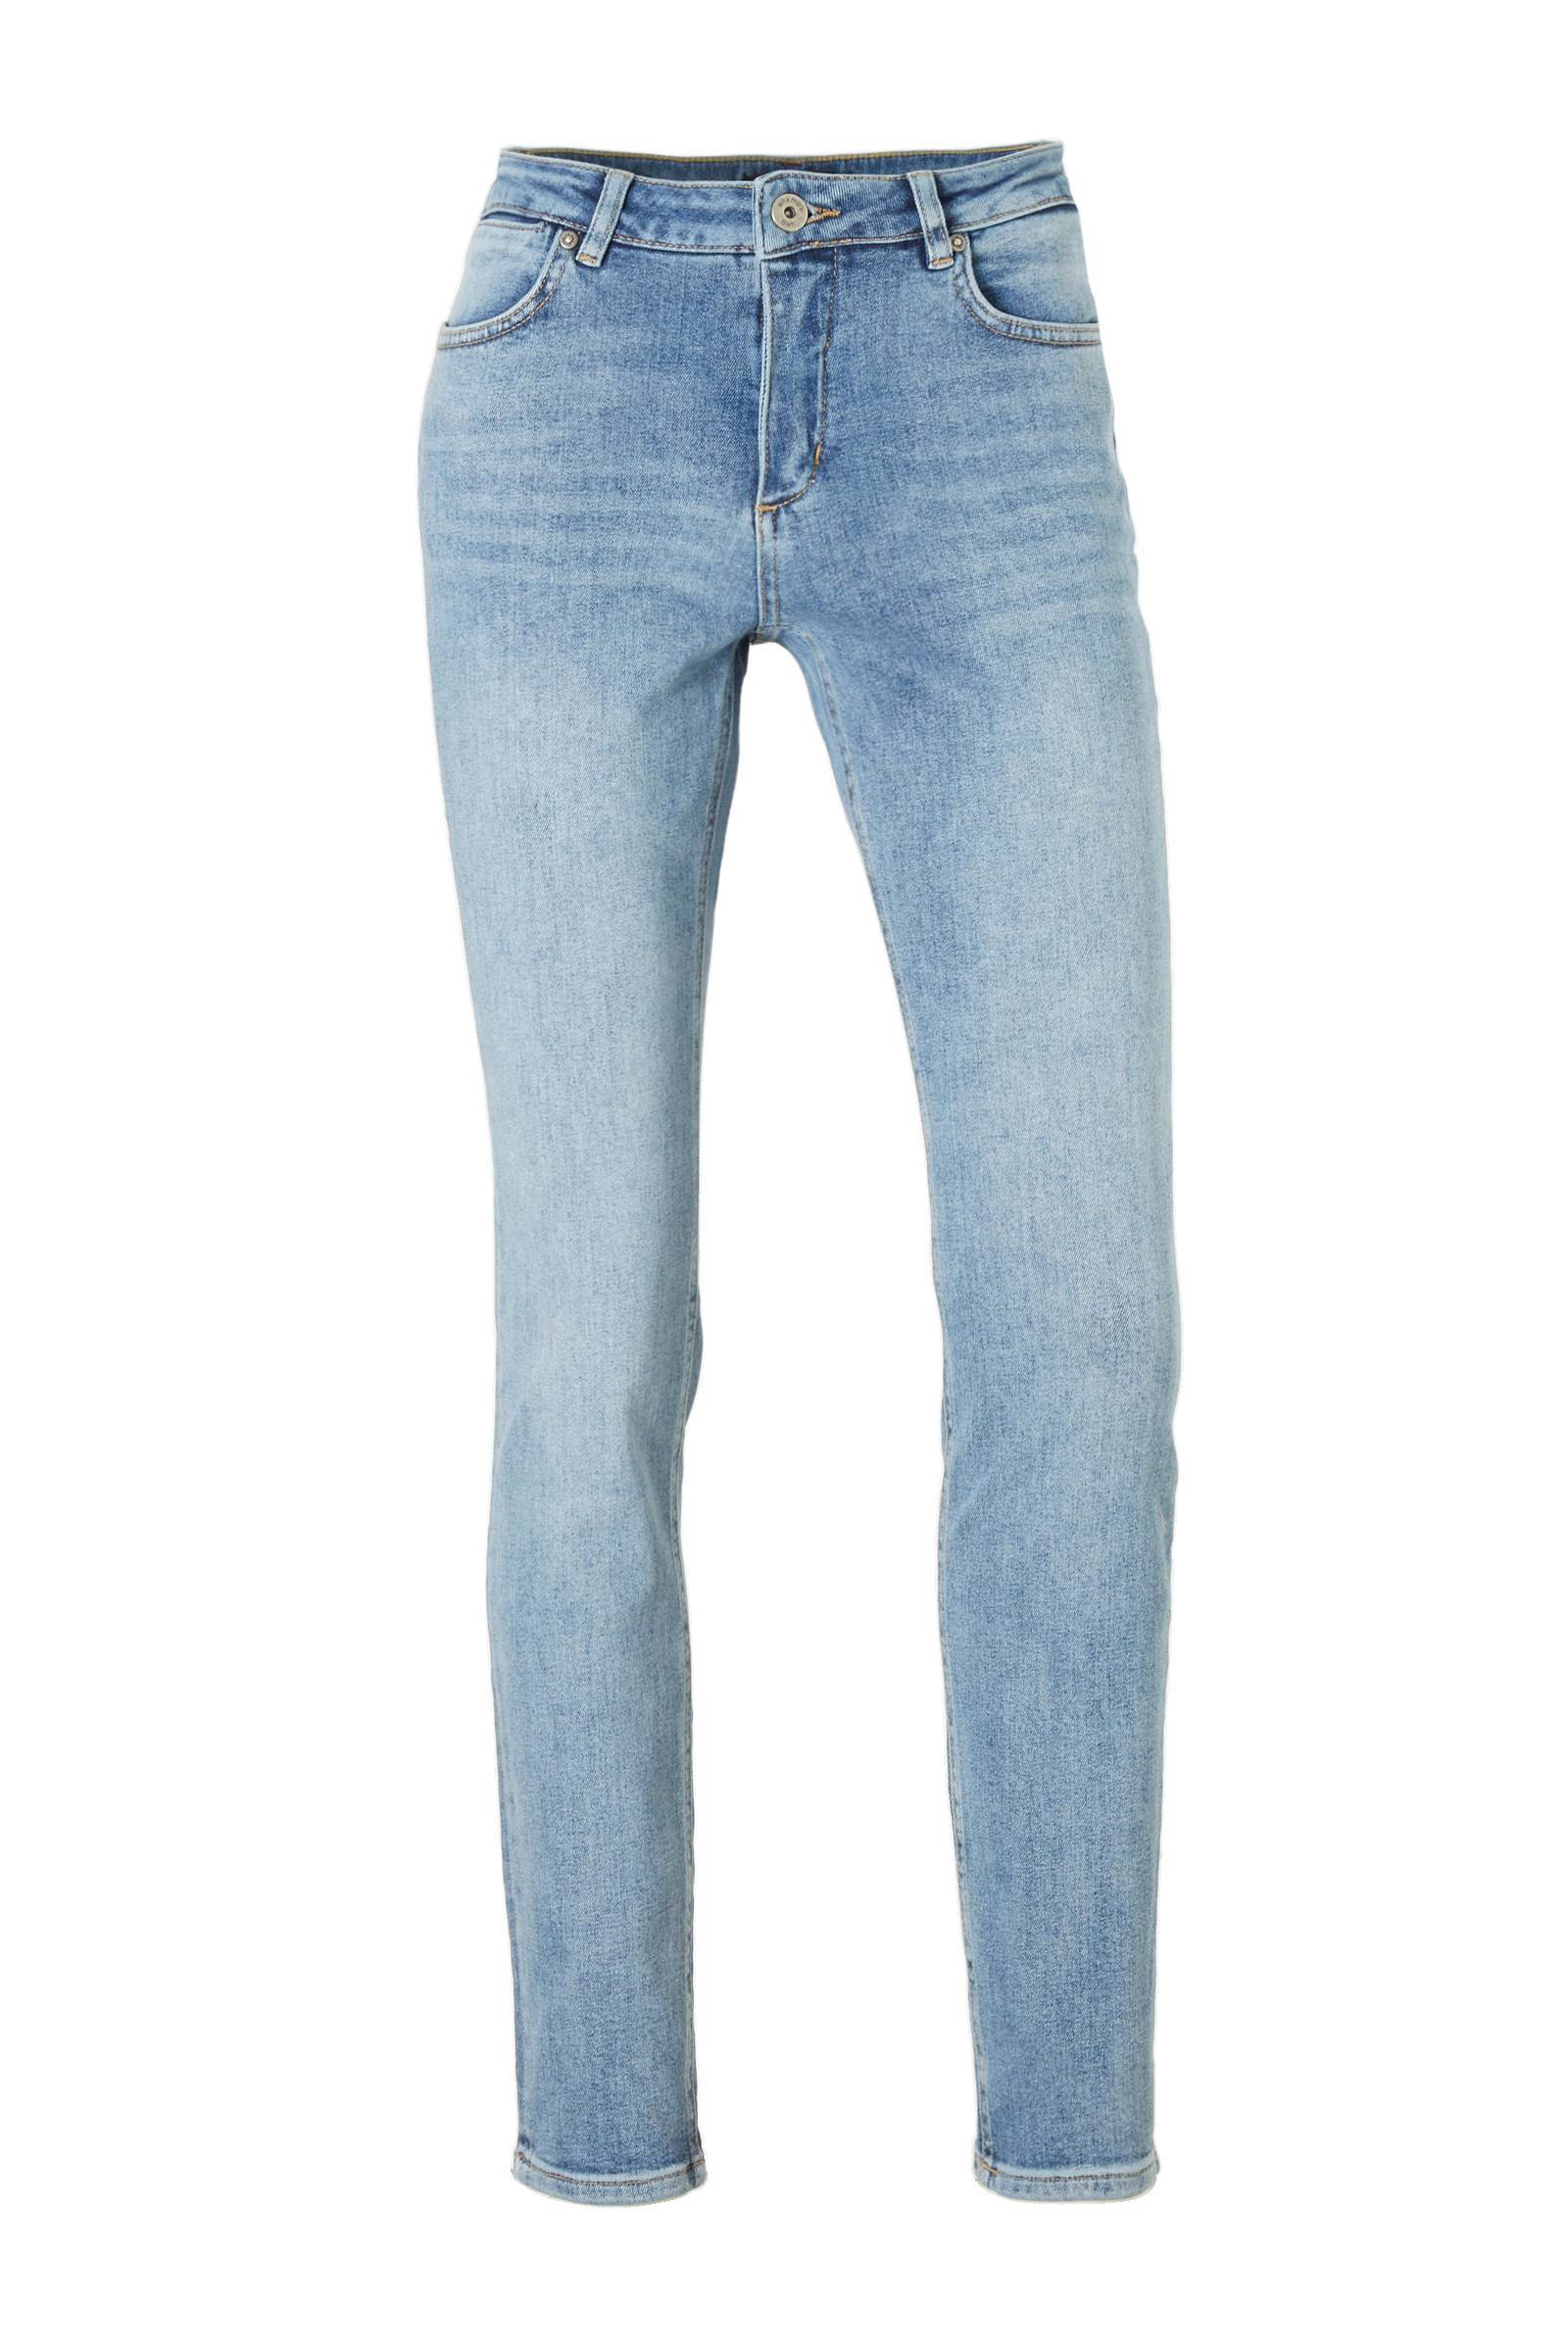 whkmp's own slim fit jeans (dames)